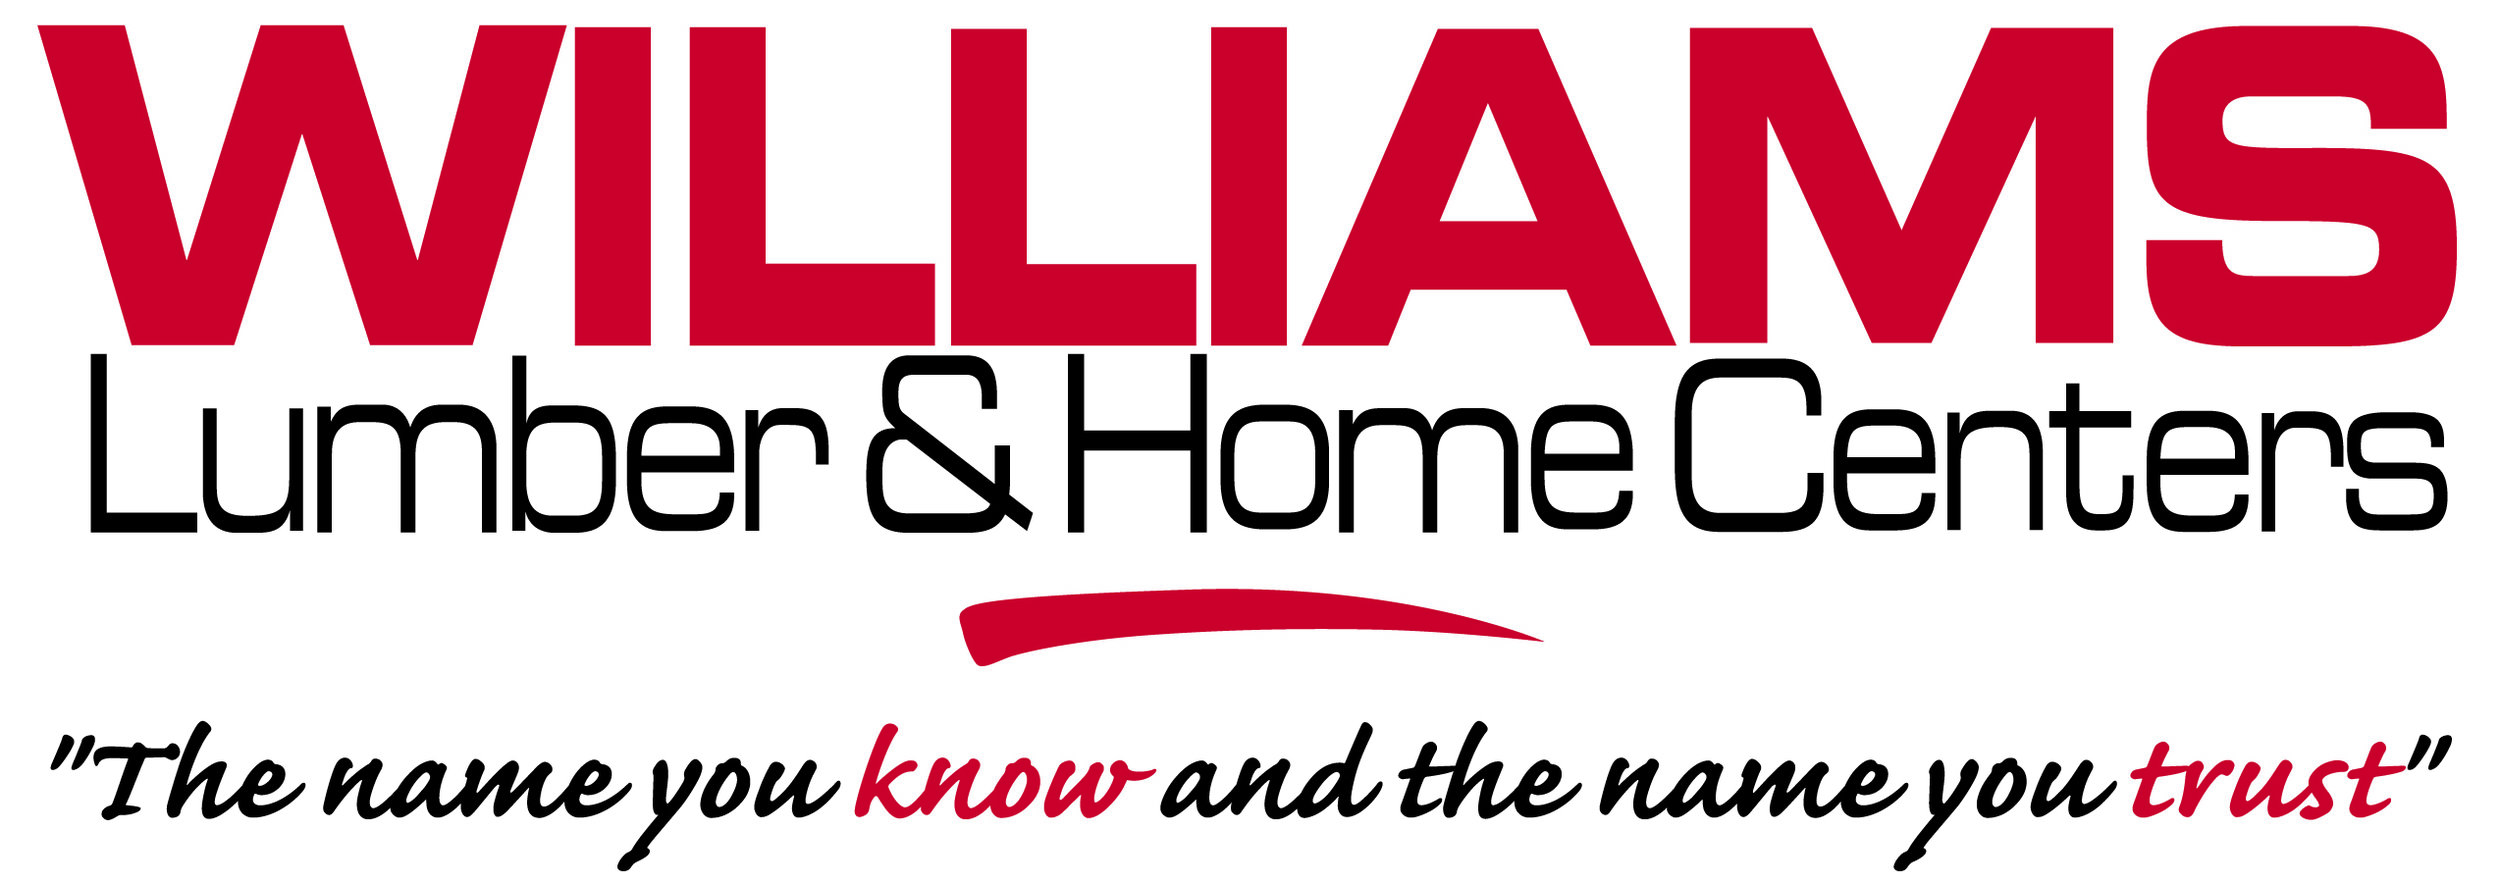 Williams Lumber & Home Centers